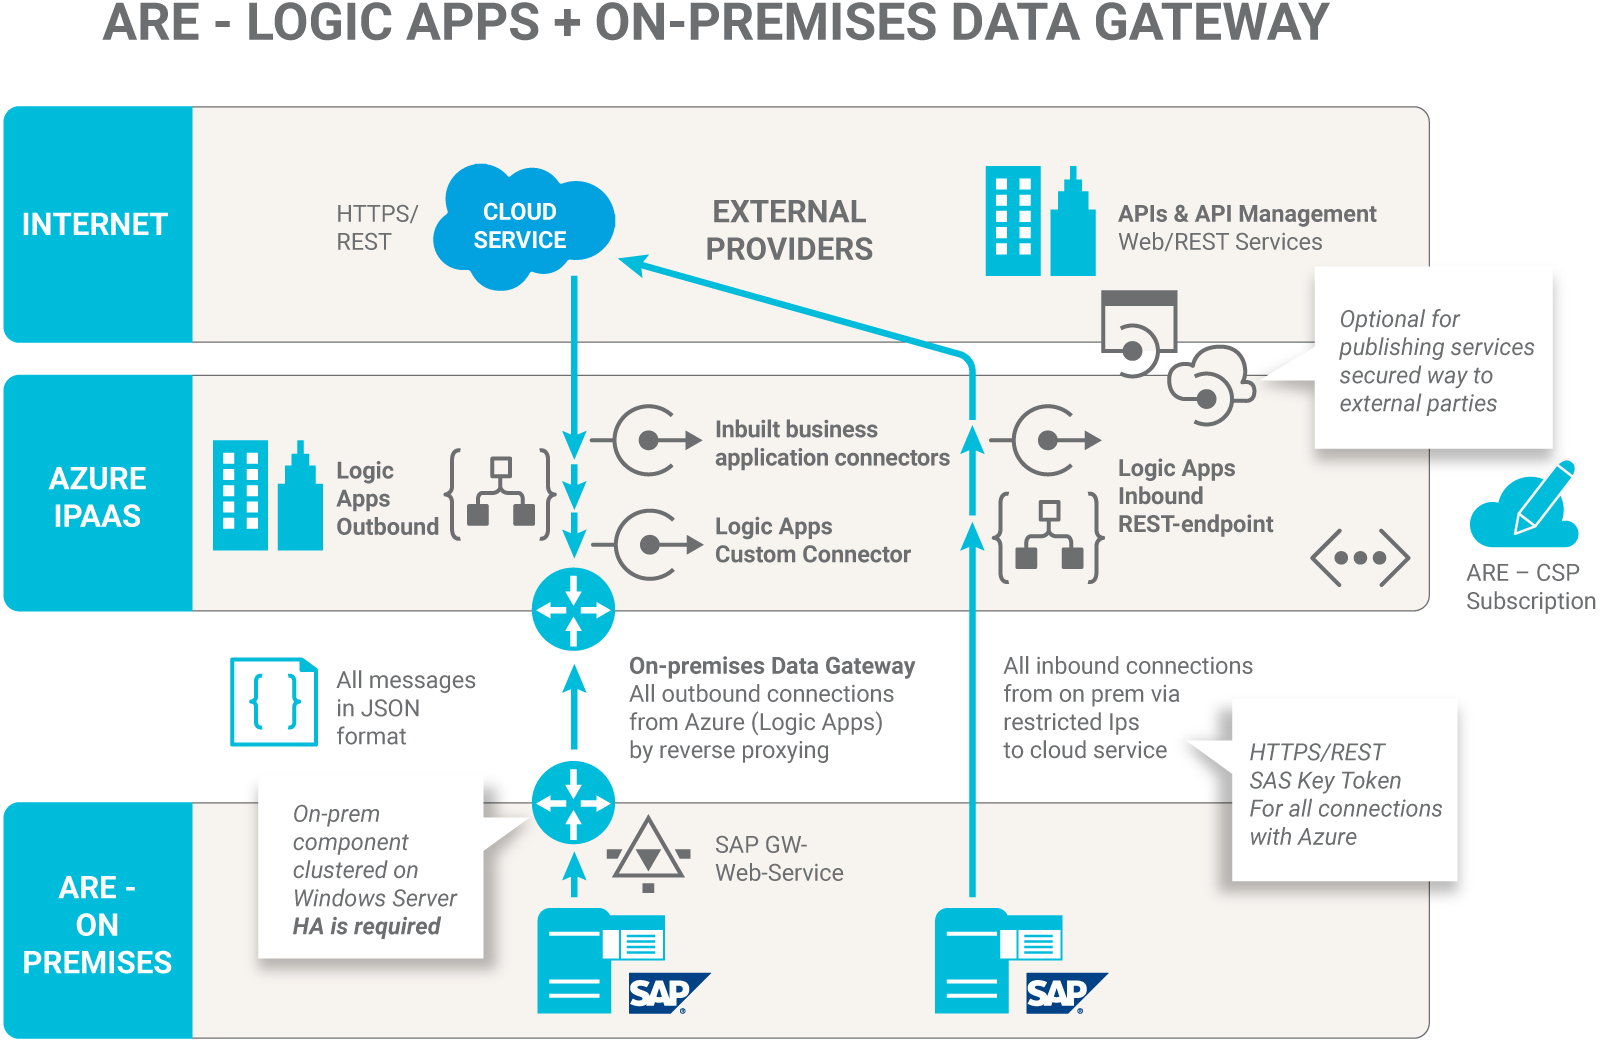 cloud1-ARE-logic-apps-on-premises-data-gateway